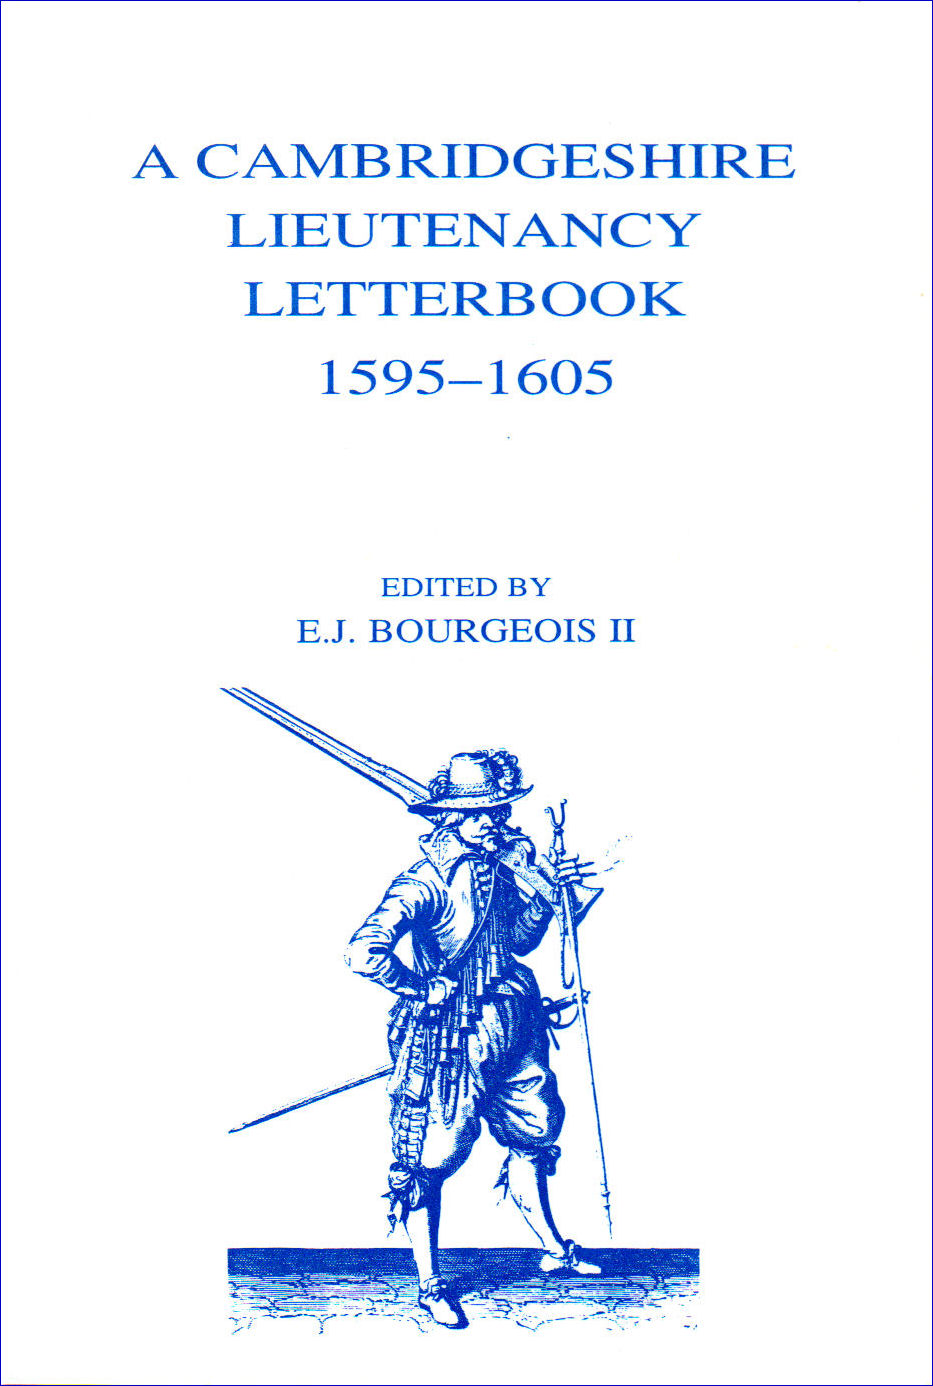 12. A Cambridgeshire Lieutenancy Letterbook 1595-1605. Edited by E.J. Bourgeois II